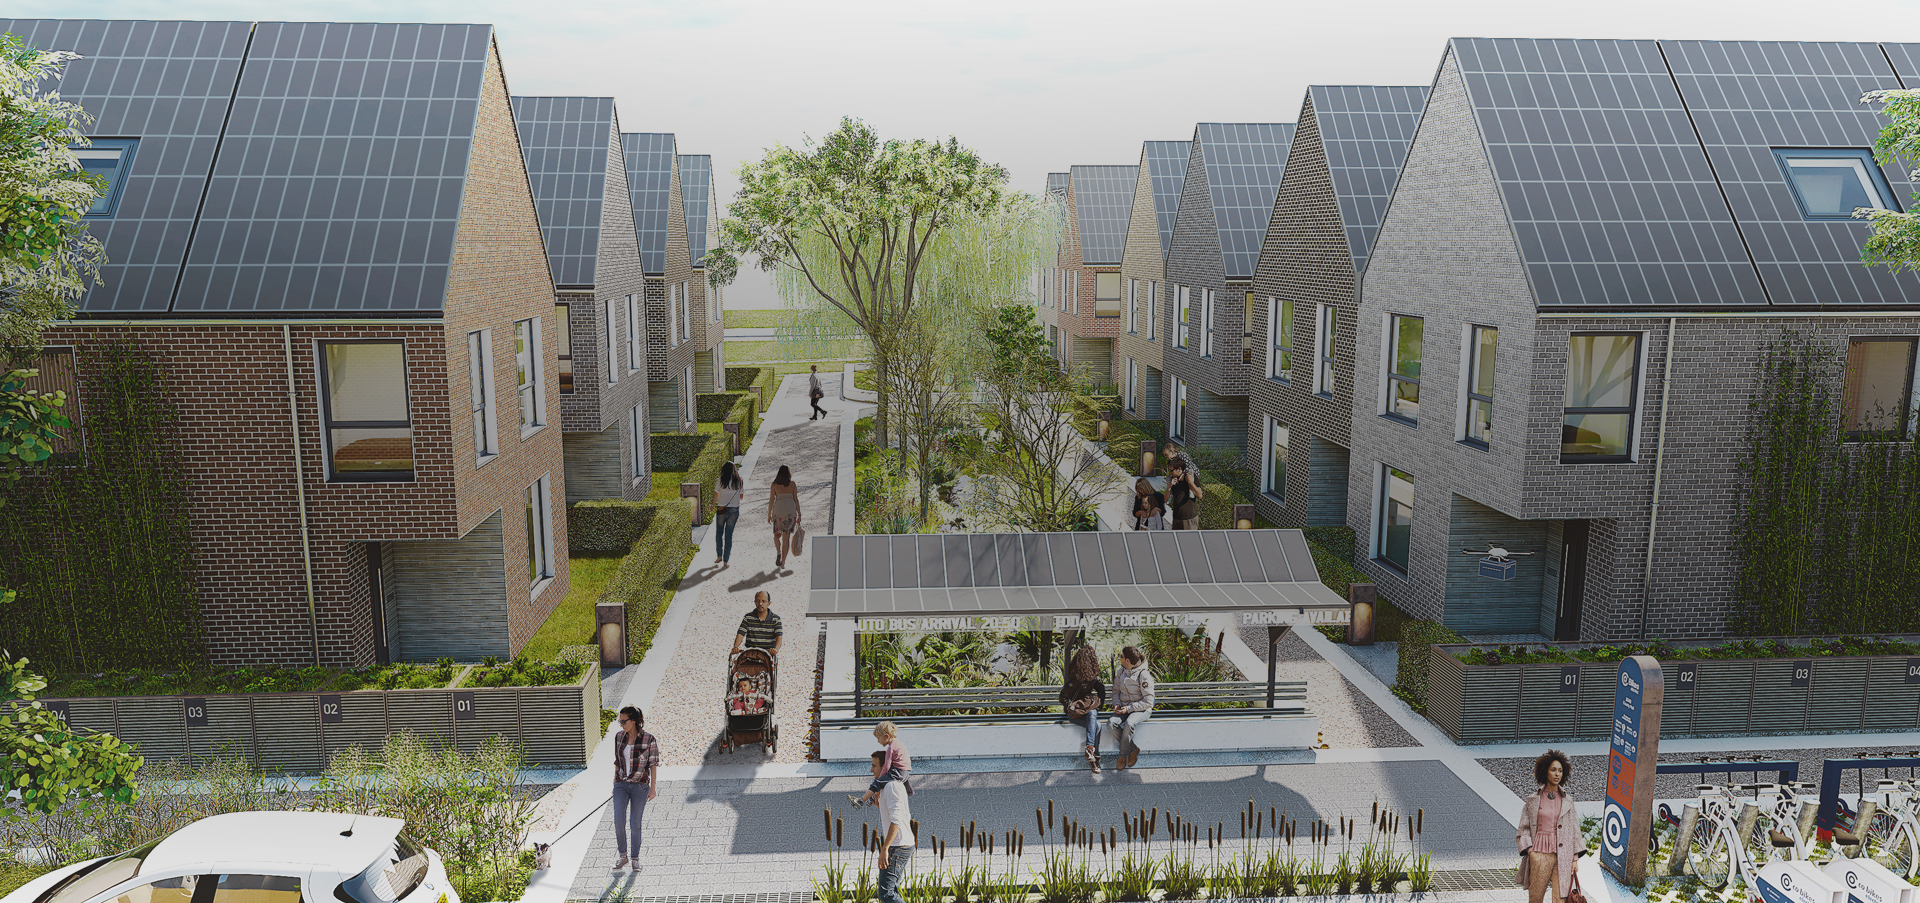 A long-term property investment opportunity with a positive social impact